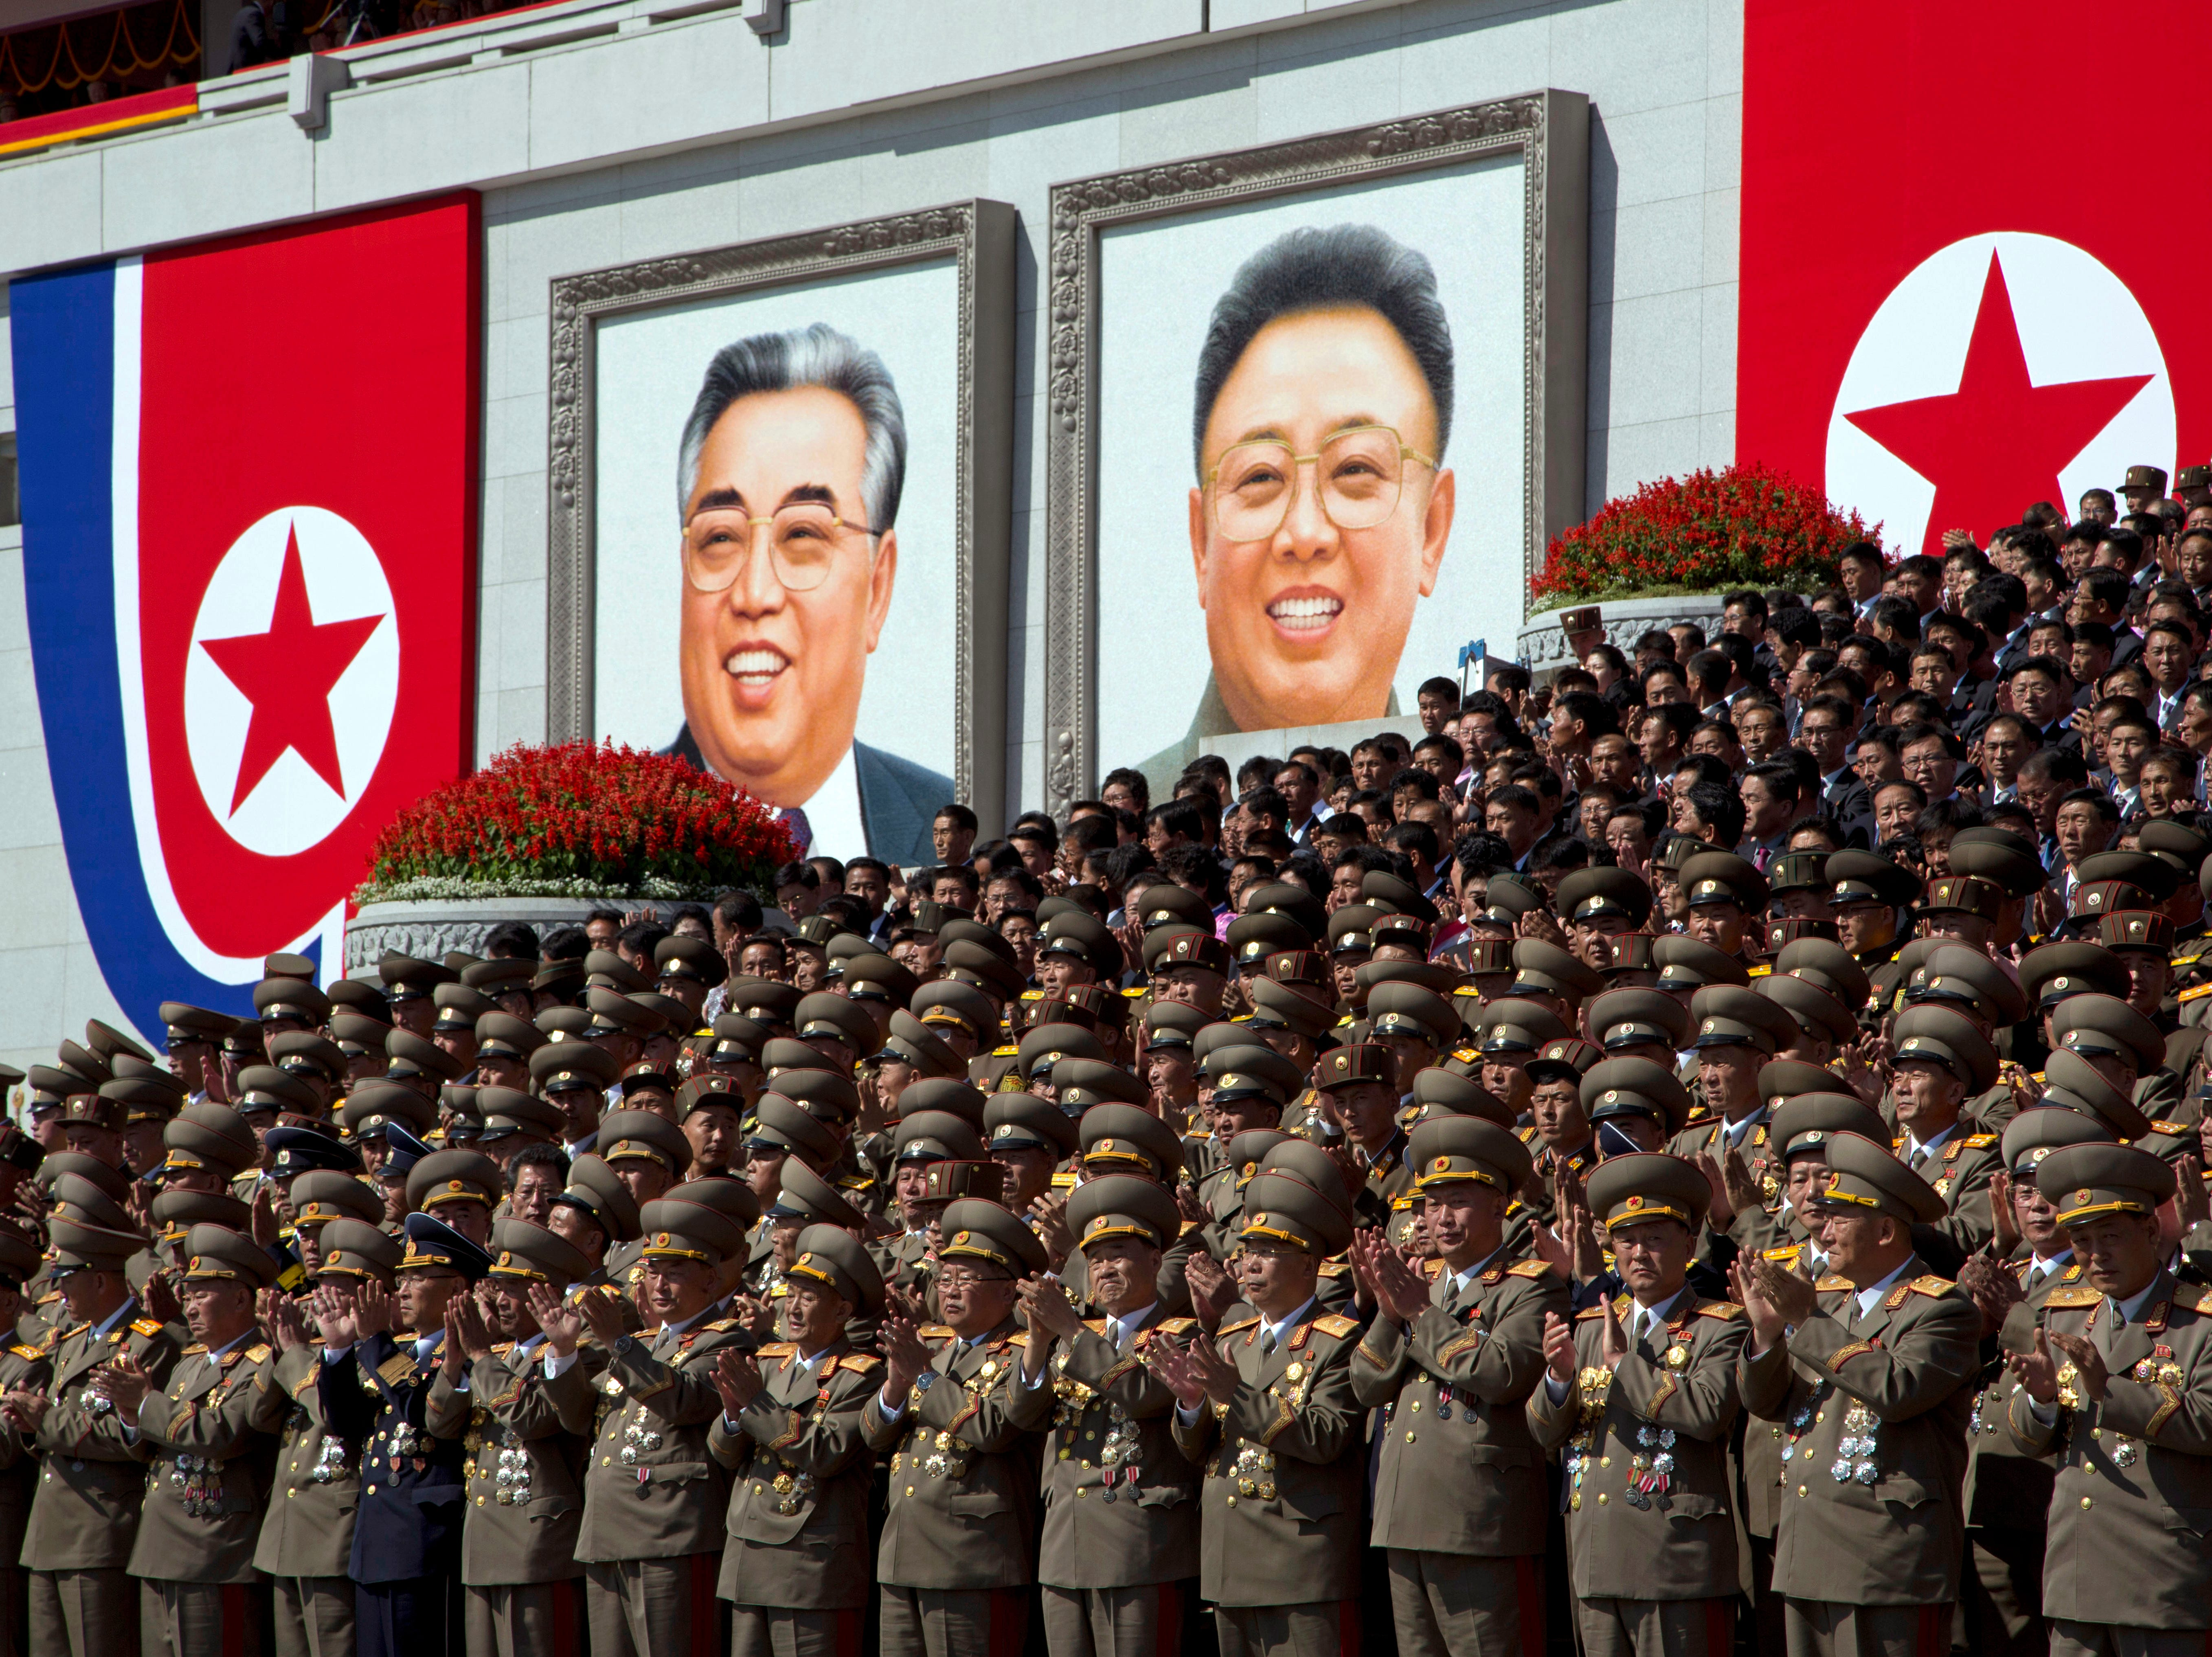 North Korean military officers applaud near portraits of late North Korean leaders Kim Il Sung and Kim Jong Il during a parade for the 70th anniversary of North Korea's founding day in Pyongyang, North Korea, Sunday, Sept. 9, 2018. North Korea staged a major military parade, huge rallies and will revive its iconic mass games on Sunday to mark its 70th anniversary as a nation.